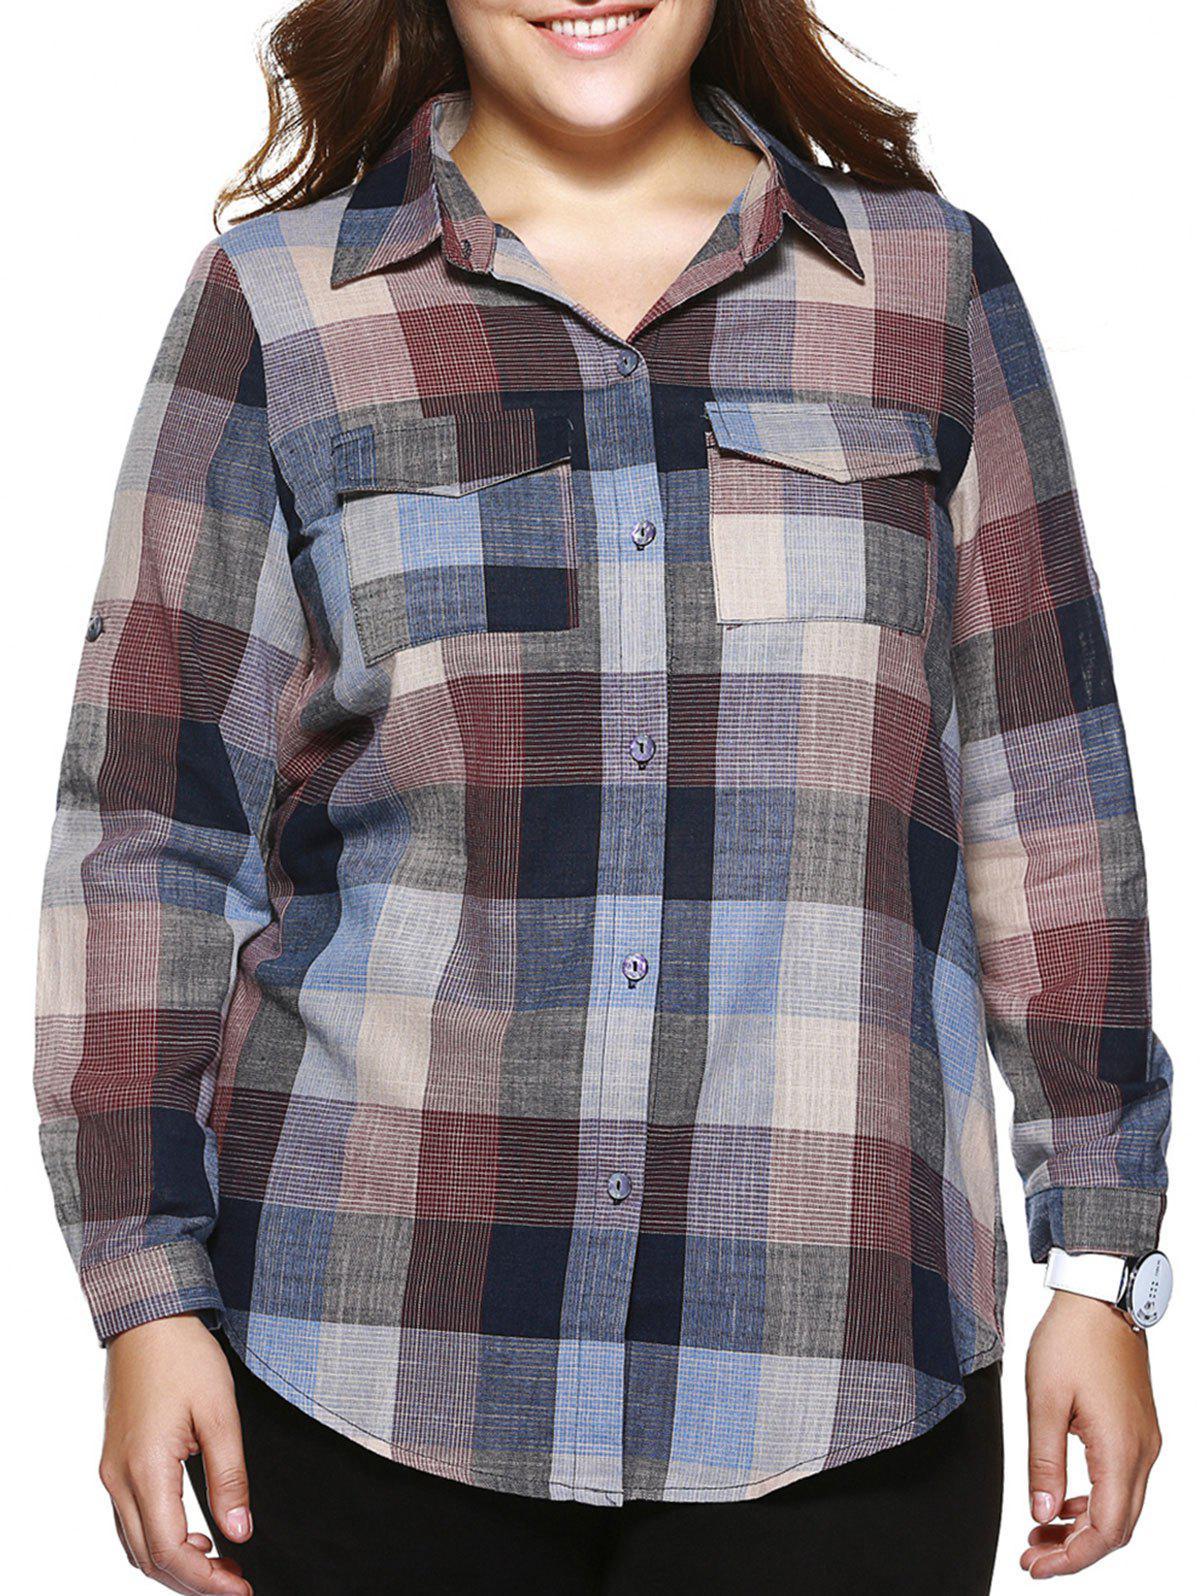 Oversized Casual Plaid Print Adjustable Sleeve Shirt - COLORMIX 5XL